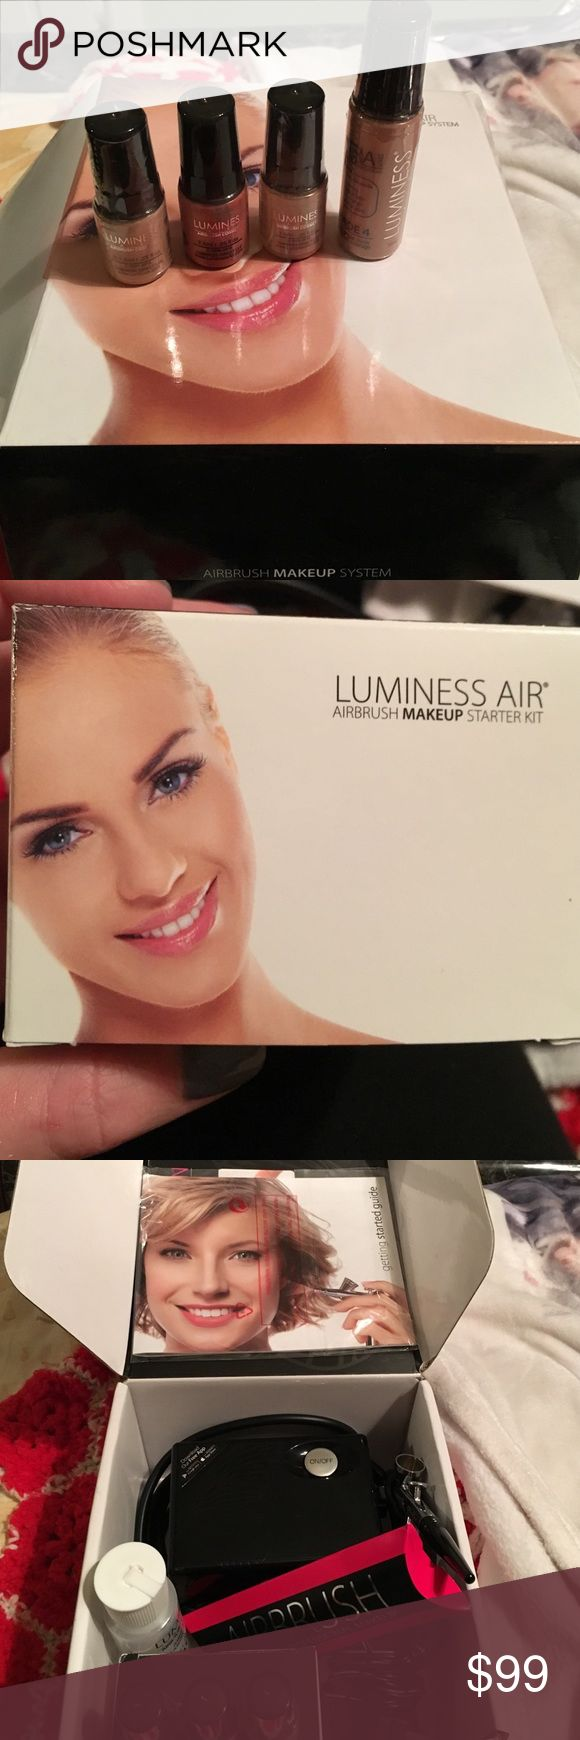 Luminess air brush makeup set like new. Luminess air brush makeup set like new. Only used once. Comes with foundation, blush, eye shadow and primer. Comes with air brush machine, charger, directions and cleaning bottle. Makeup Brushes & Tools